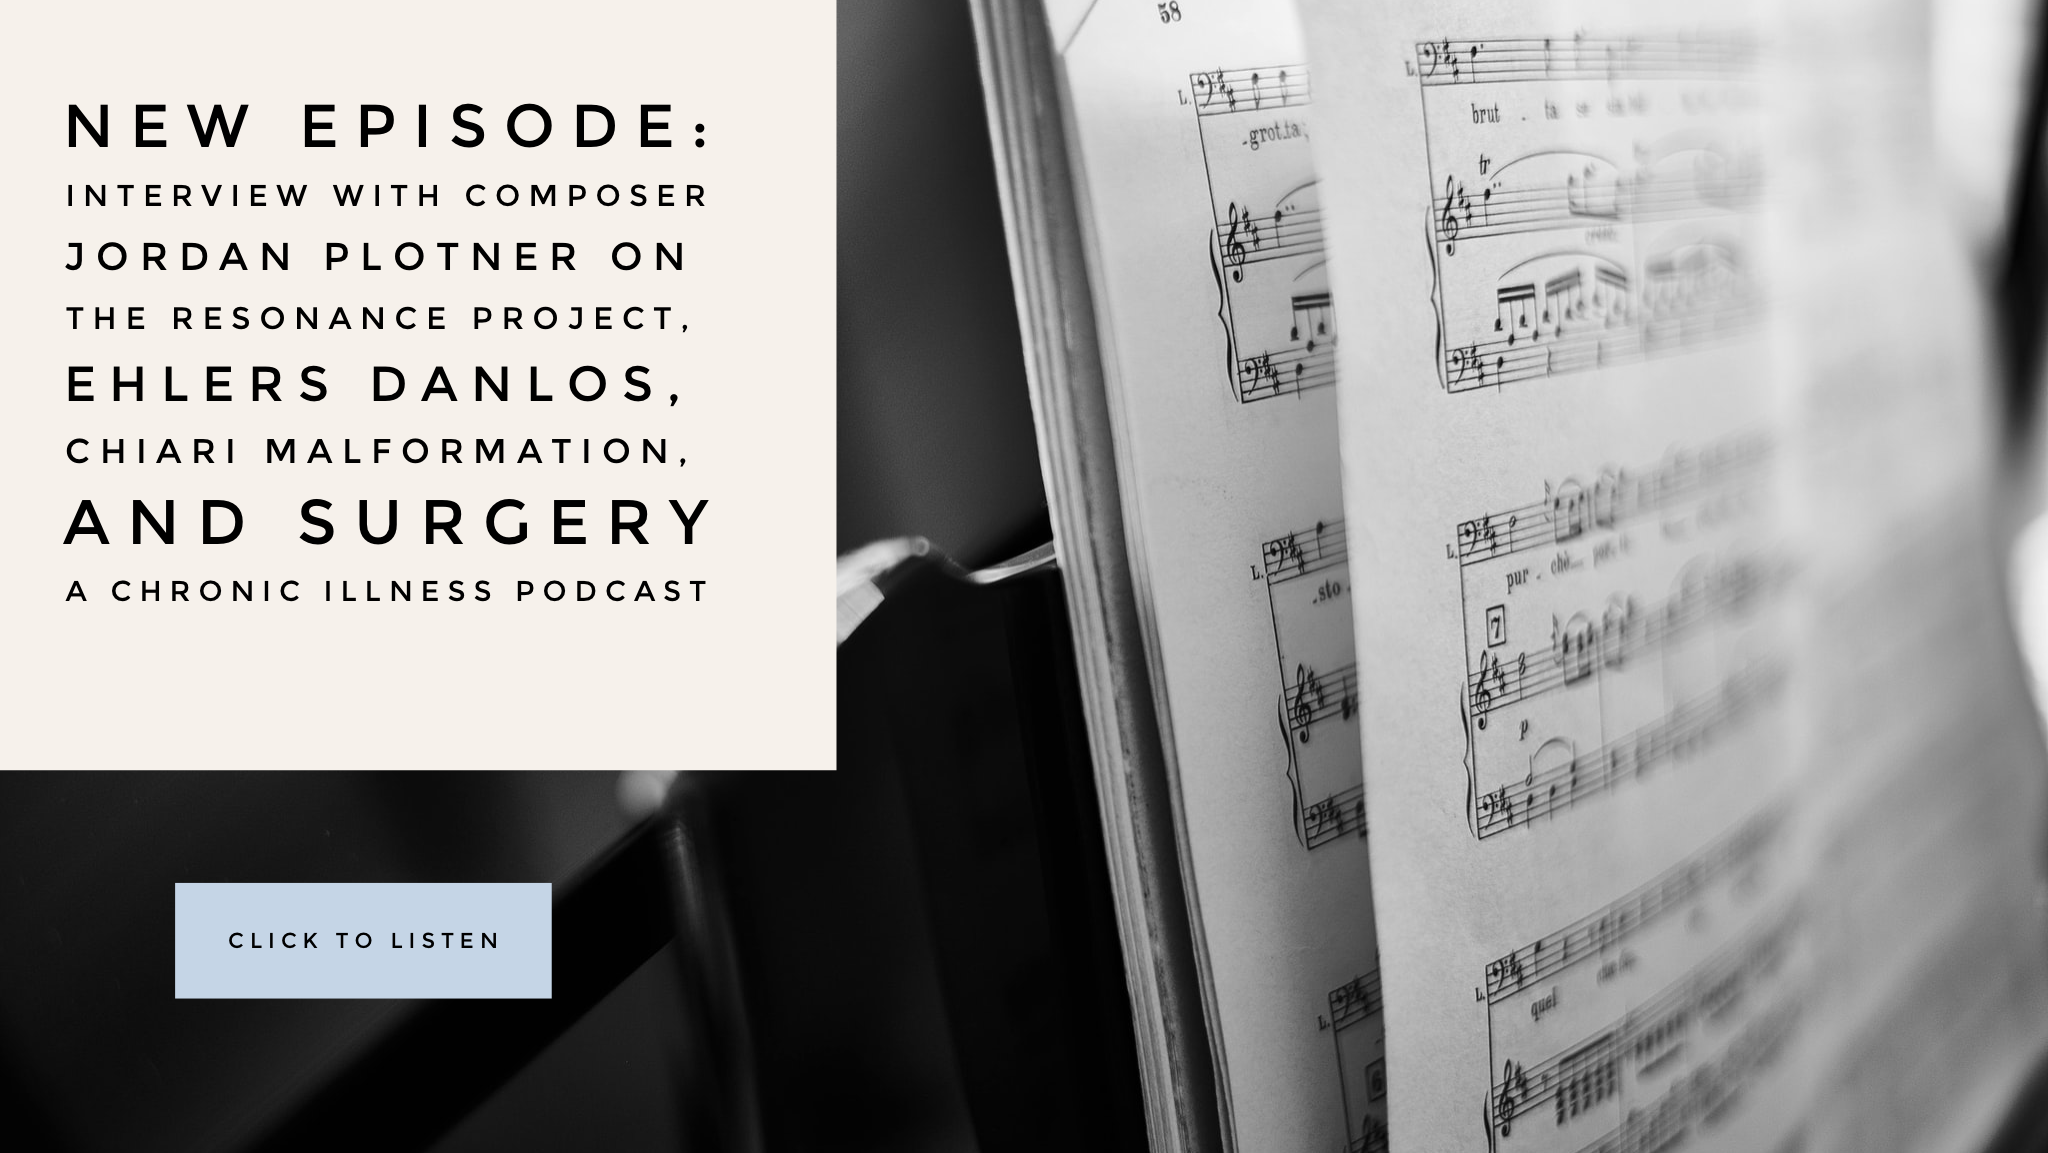 Interview With Composer Jordan Plotner On The Resonance Project, Ehlers Danlos, Chiari Malformation, and Surgery